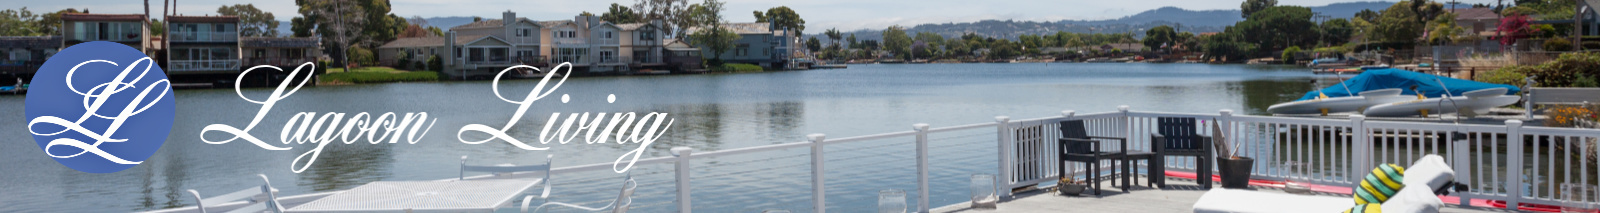 Community and Real Estate on the San Mateo Marina Lagoon